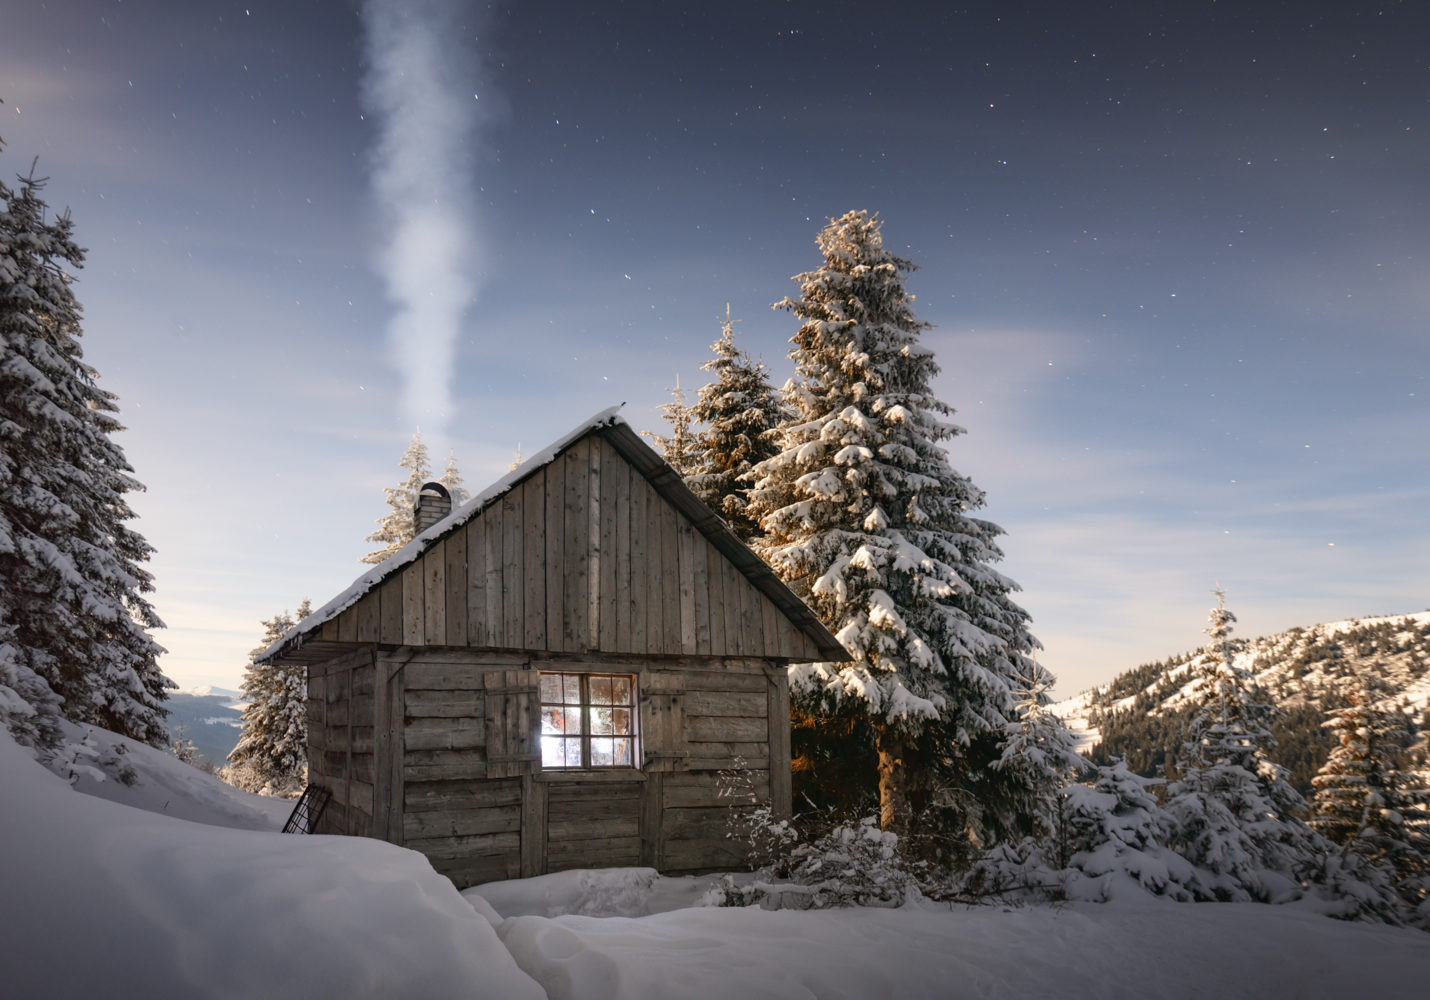 Fantastic winter landscape with wooden house in the country